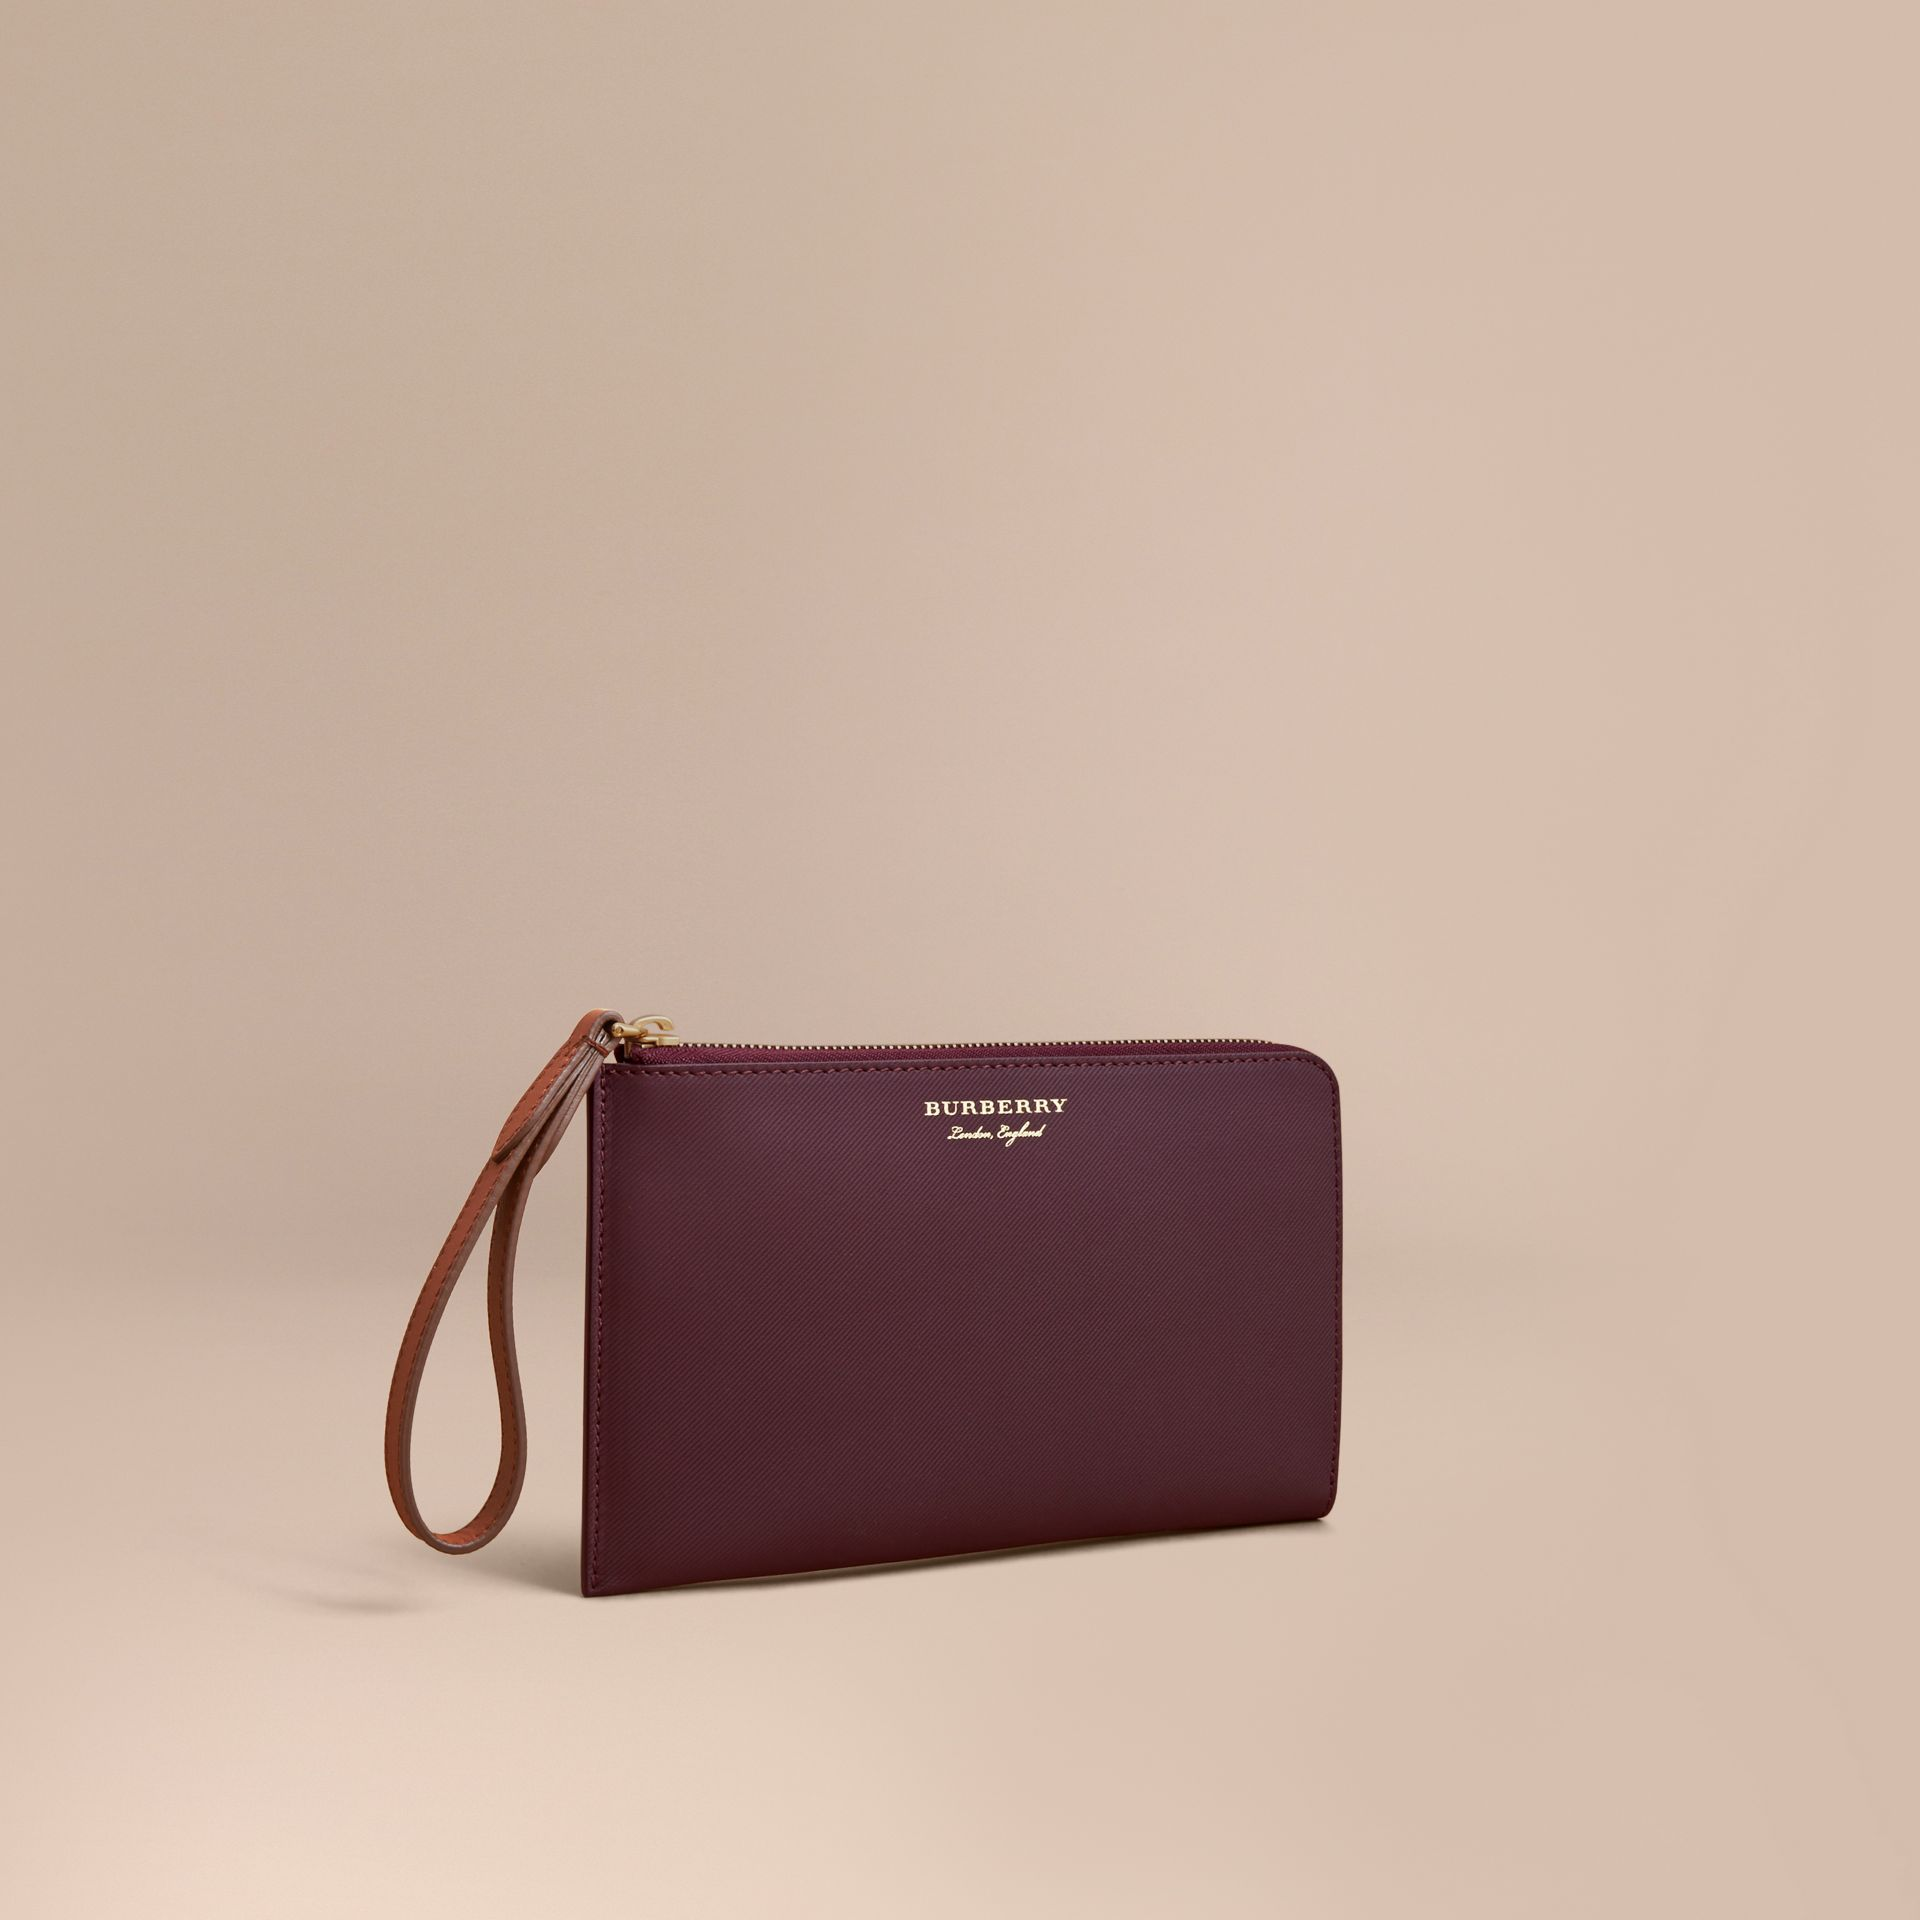 Two-tone Trench Leather Travel Wallet in Wine - Men | Burberry Hong Kong - gallery image 1